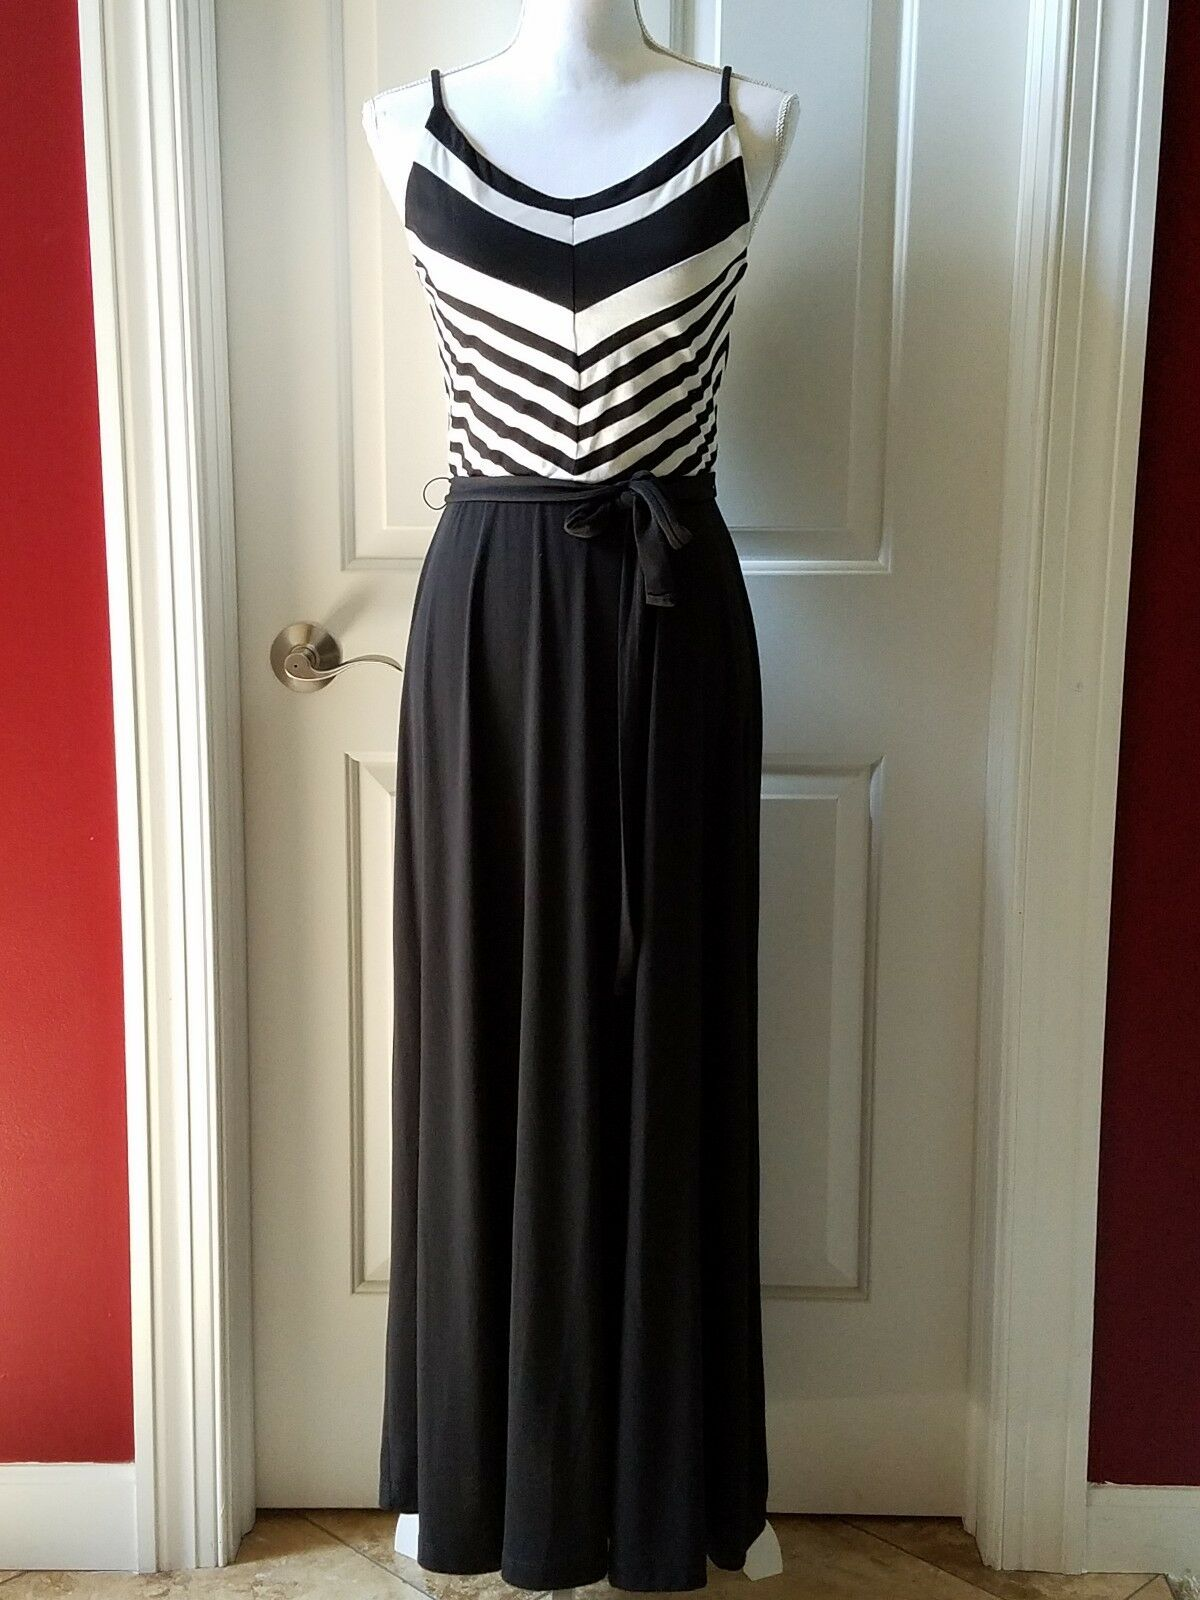 New Anthropologie ´wendy katlen´ Long Dress Sz.2